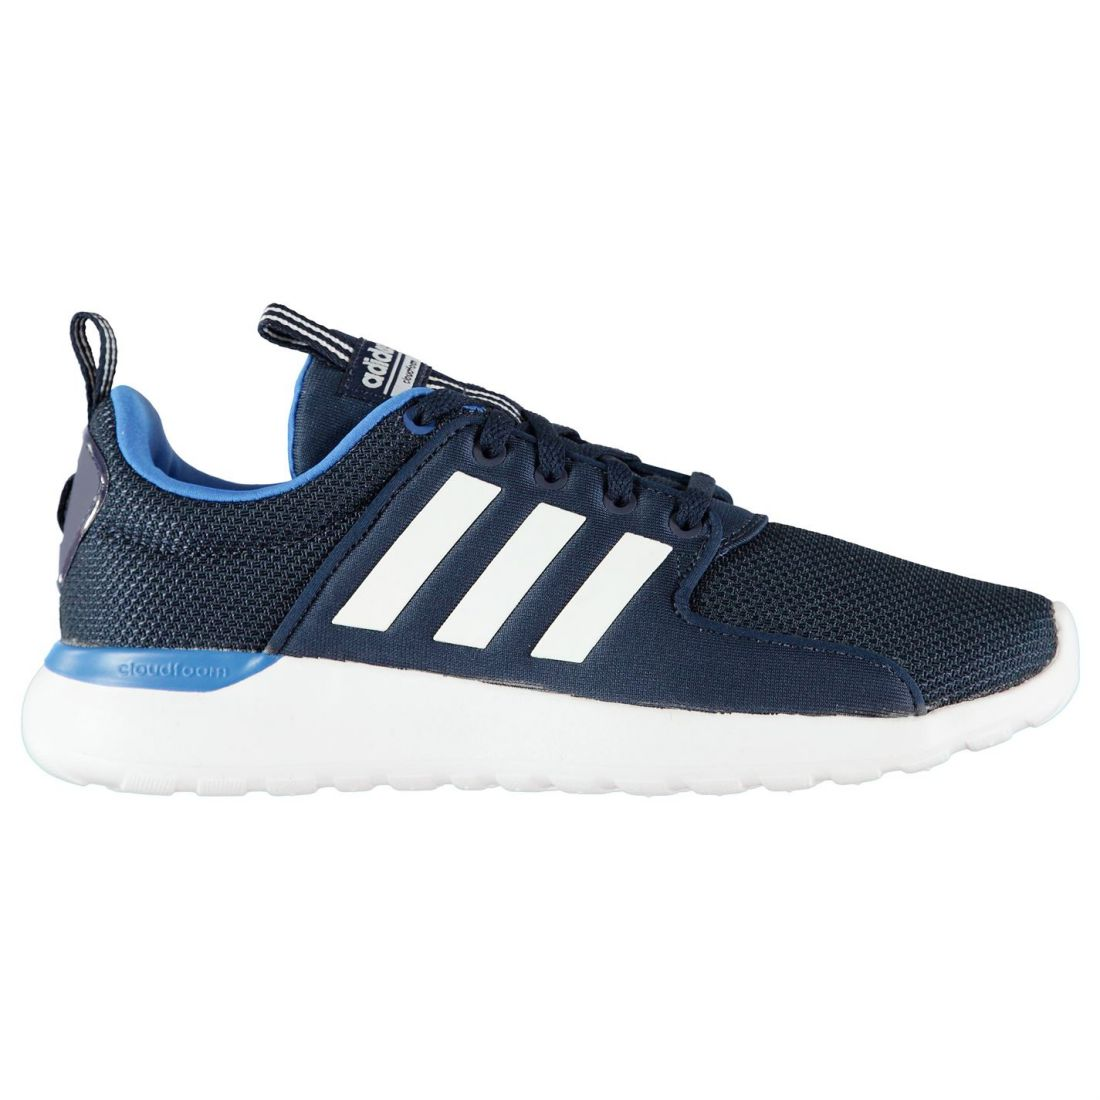 reputable site 31ae6 14864 adidas Lite Racer CF Cloadfoam Sneaker Black Men s Shoes Trainers B9819 UK  10. About this product. Picture 1 of 5  Picture 2 of 5 ...